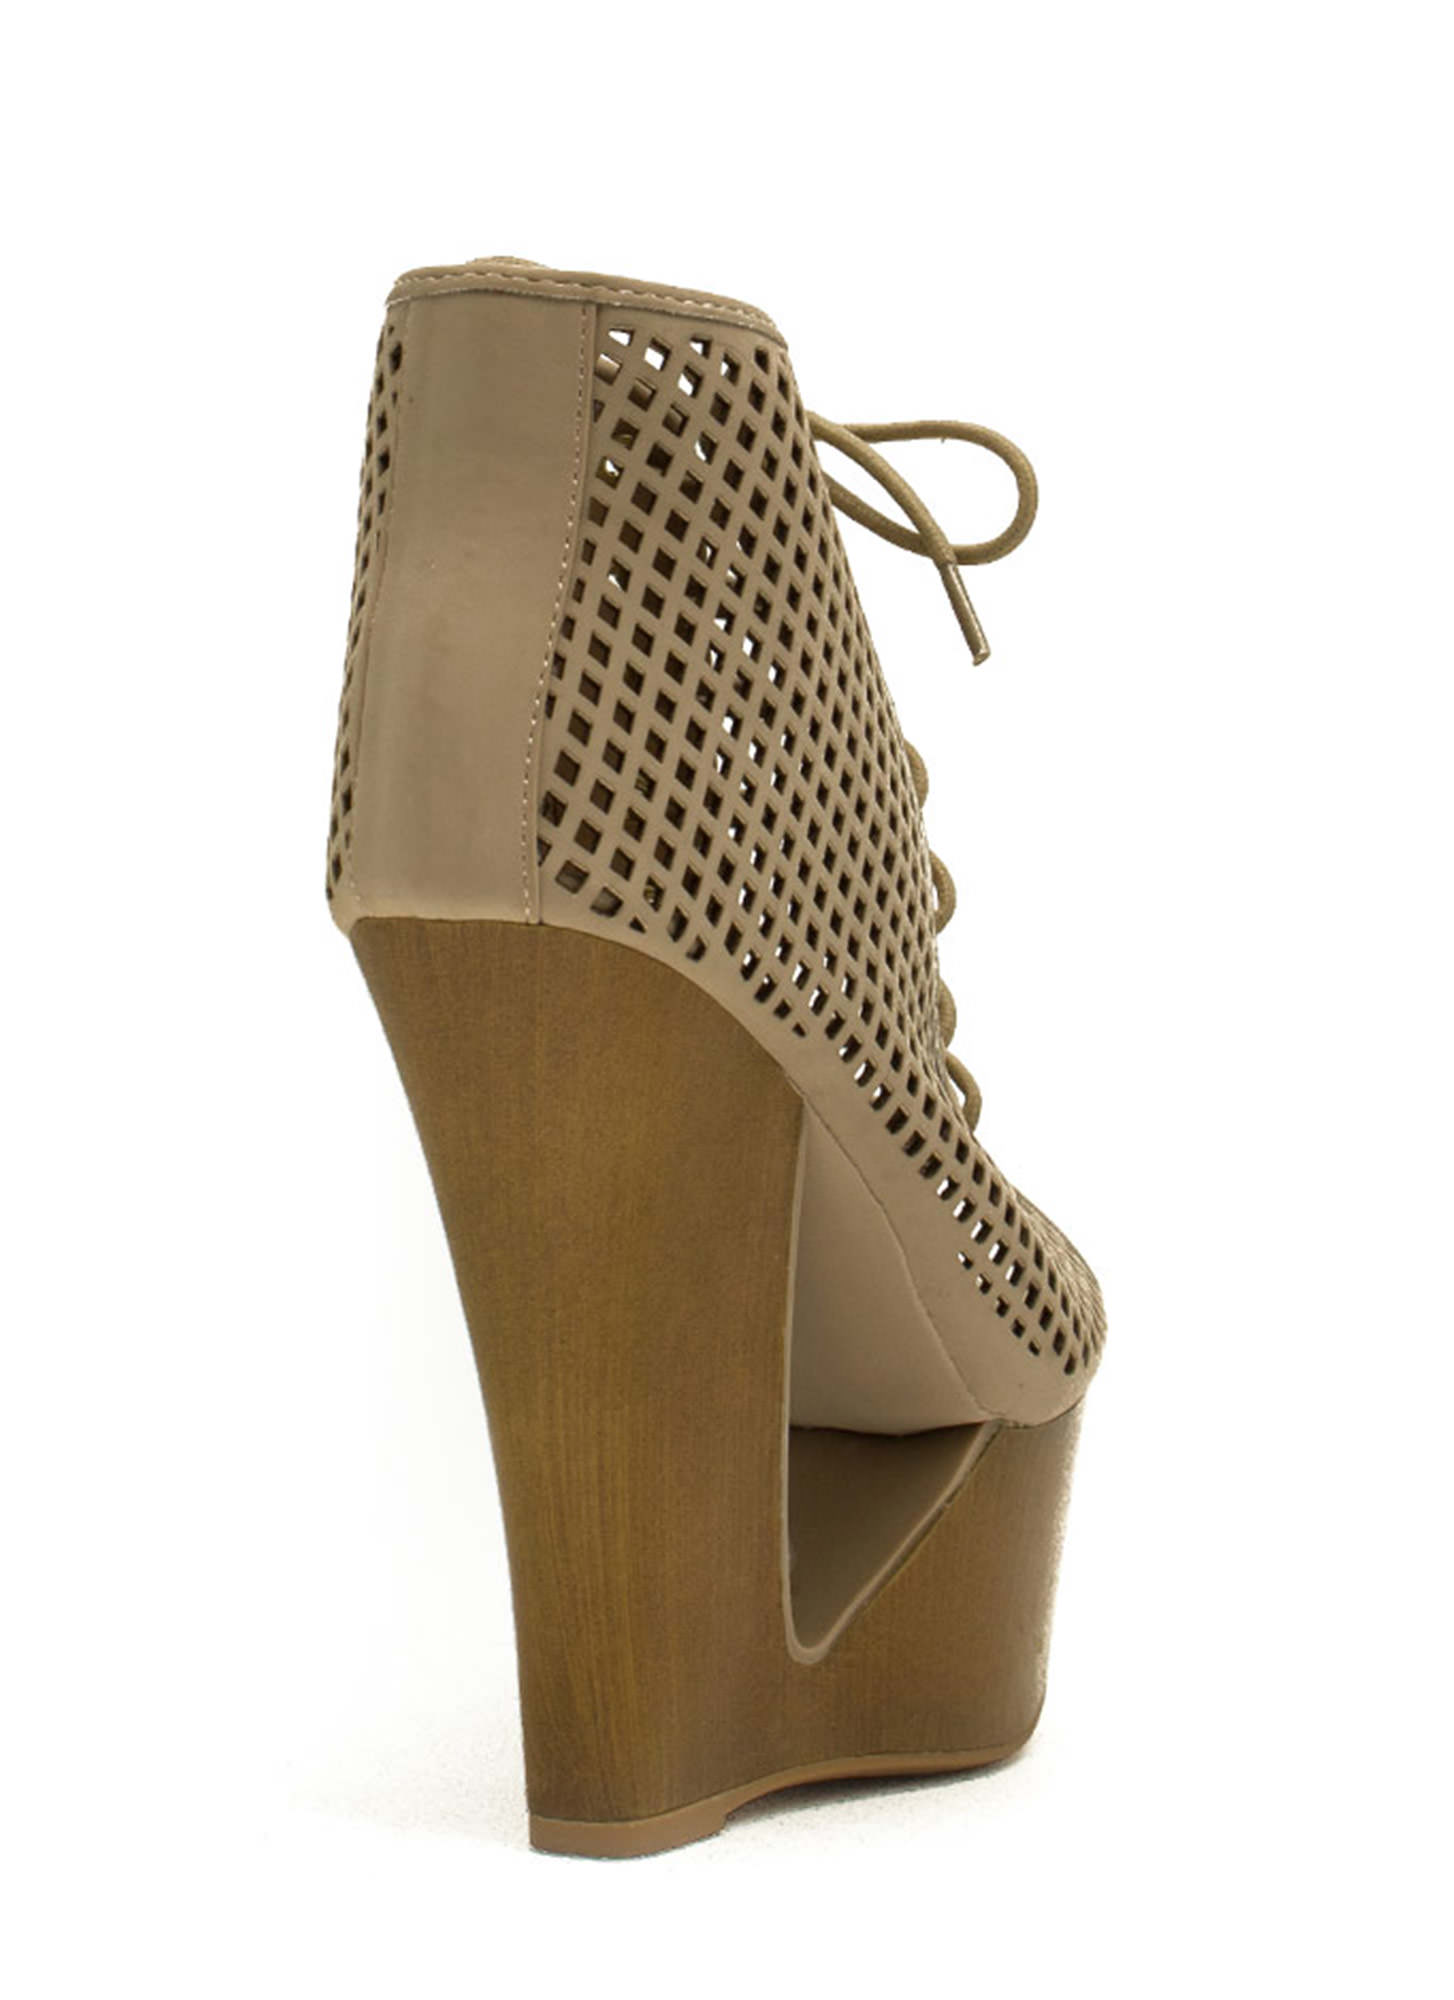 Cut It Out Peep-Toe Wedge Booties NUDE